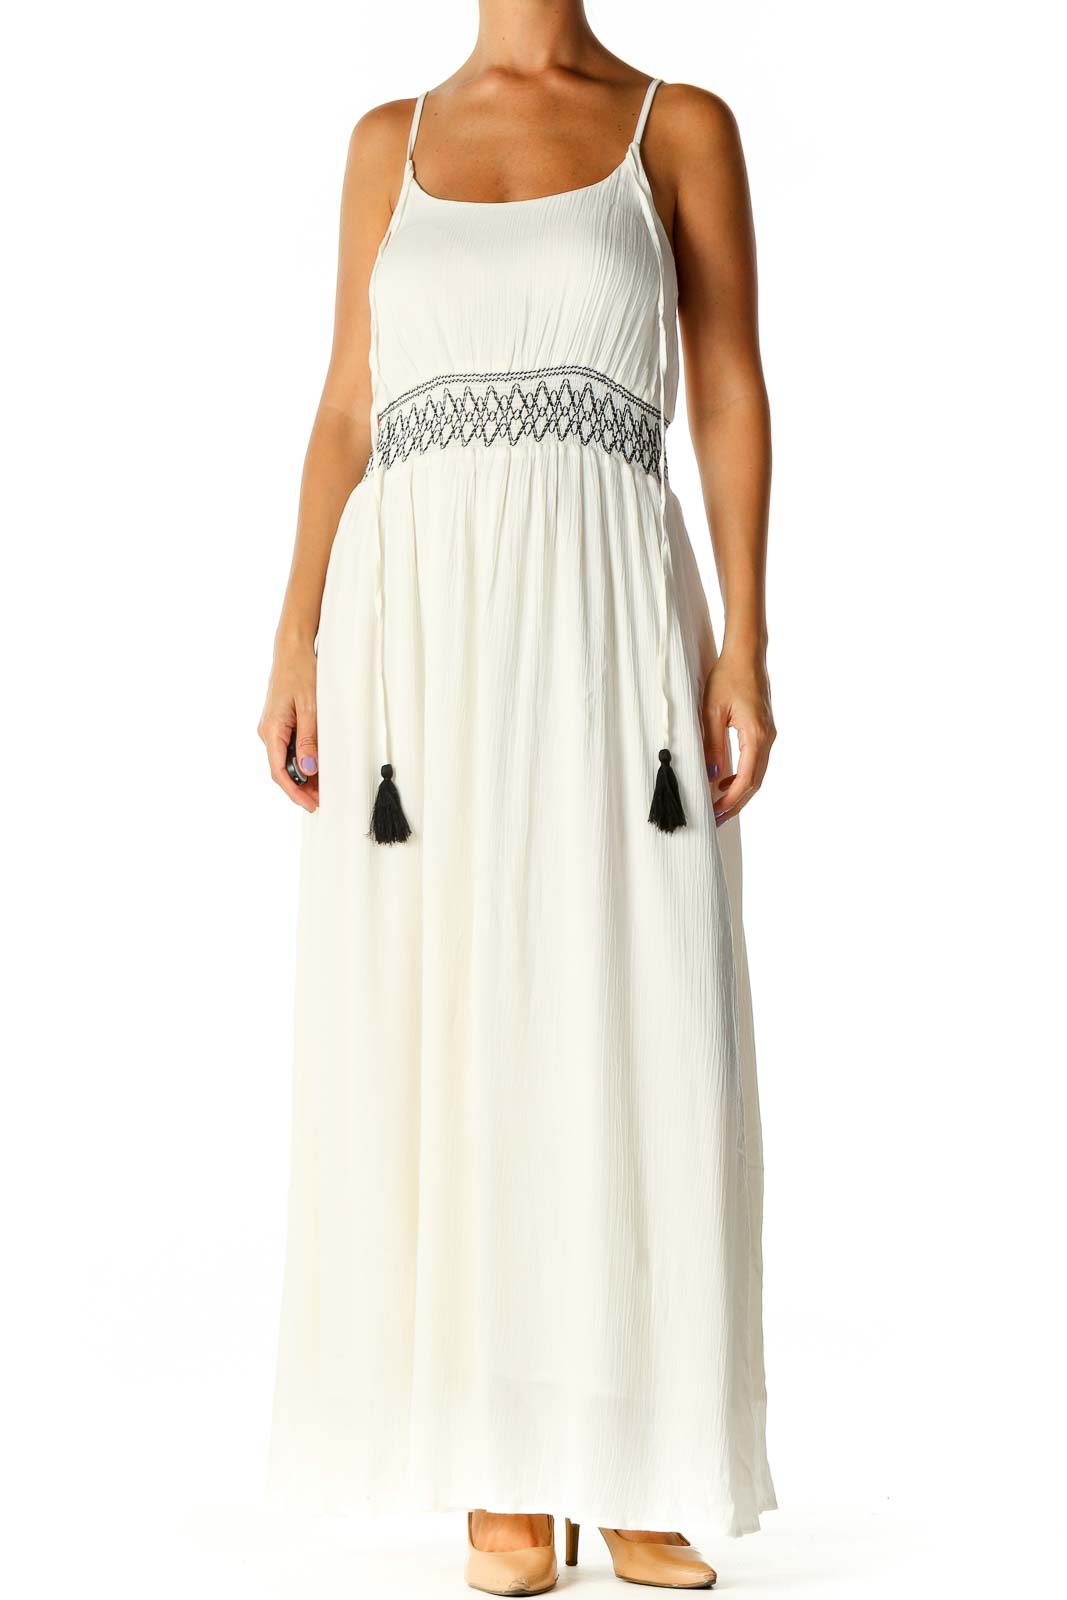 White Solid Bohemian A-Line Dress Front